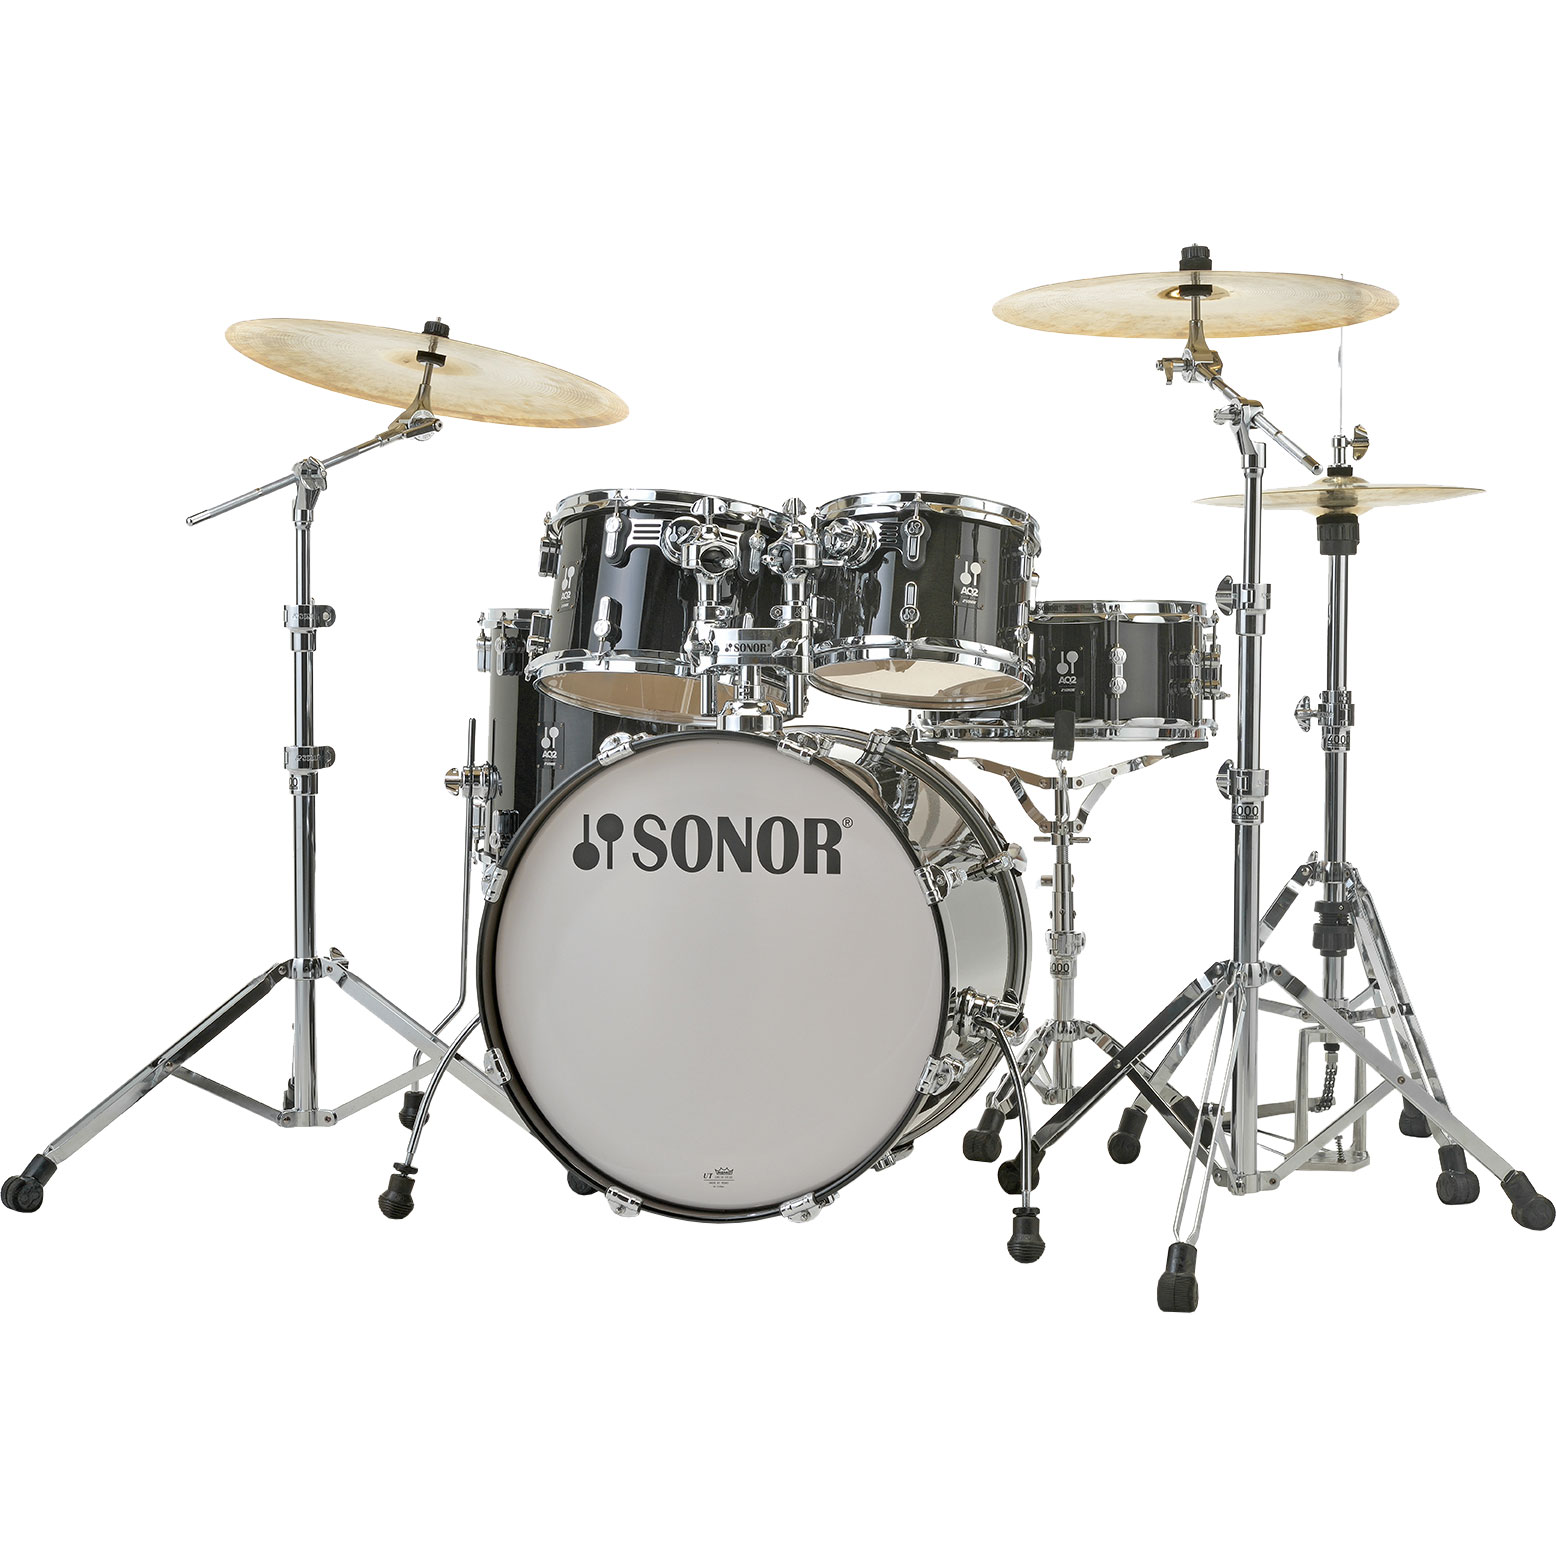 "Sonor AQ2 Studio 5-Piece Drum Set Shell Pack (20"" Bass, 10/12/14"" Toms, 14"" Snare)"